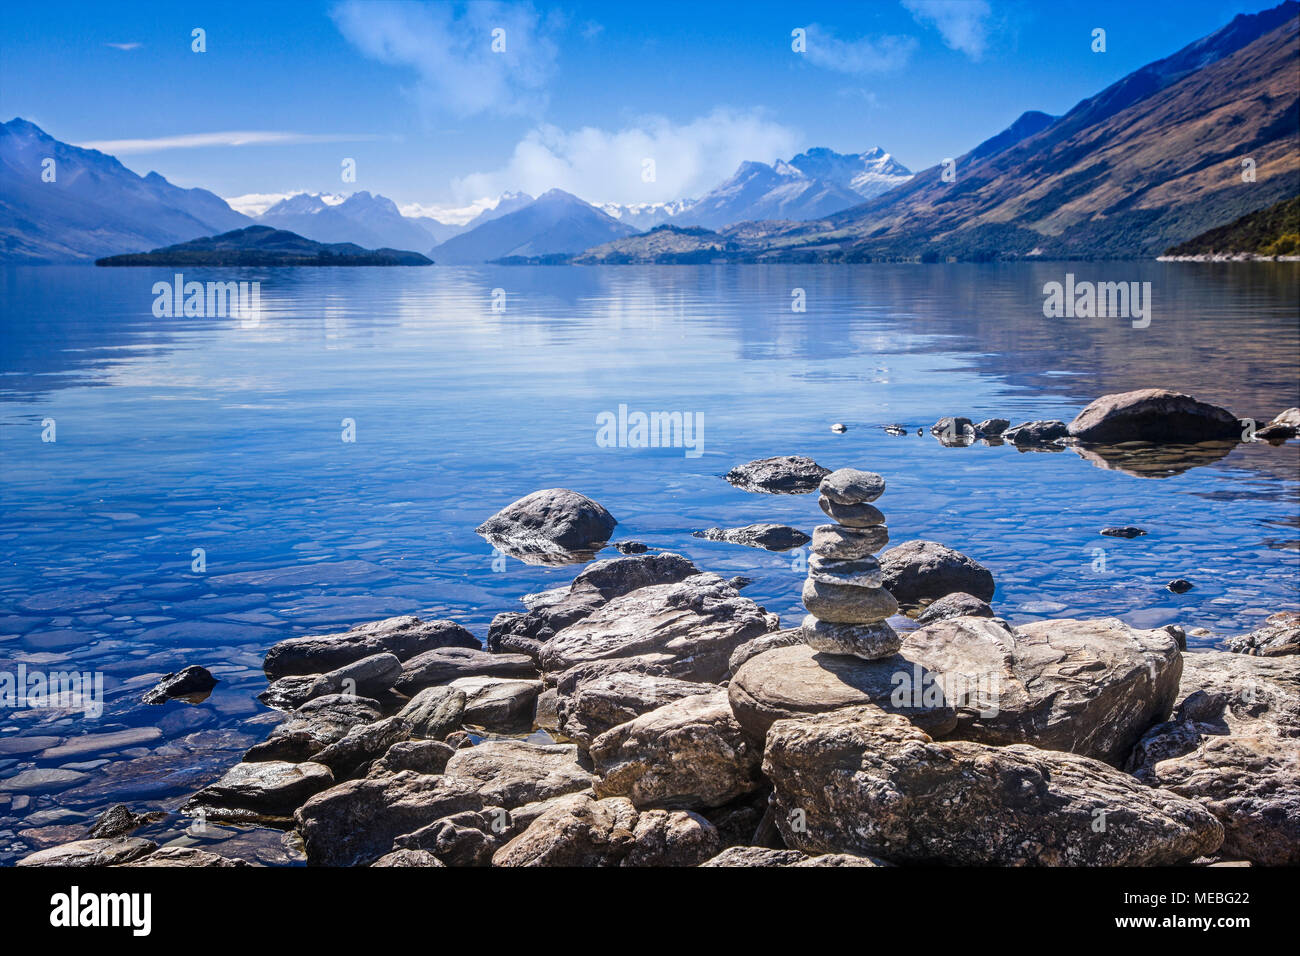 Lake Wakatipu leads to Mt. Aspiring National Park, South Island, New Zealand. - Stock Image